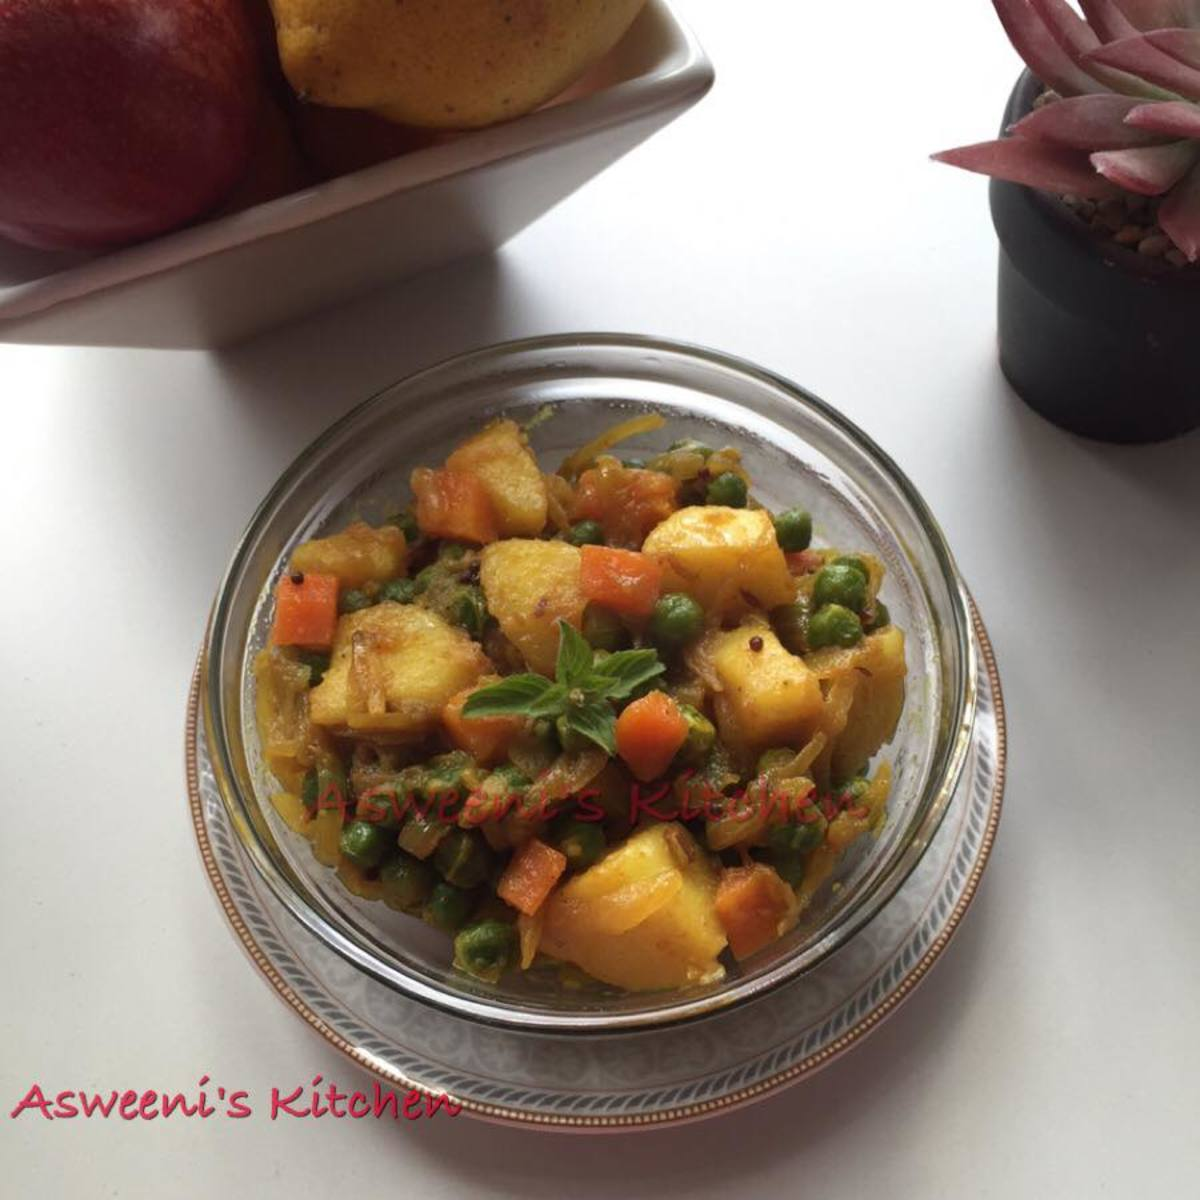 Potato, Pea, and Carrot Curry